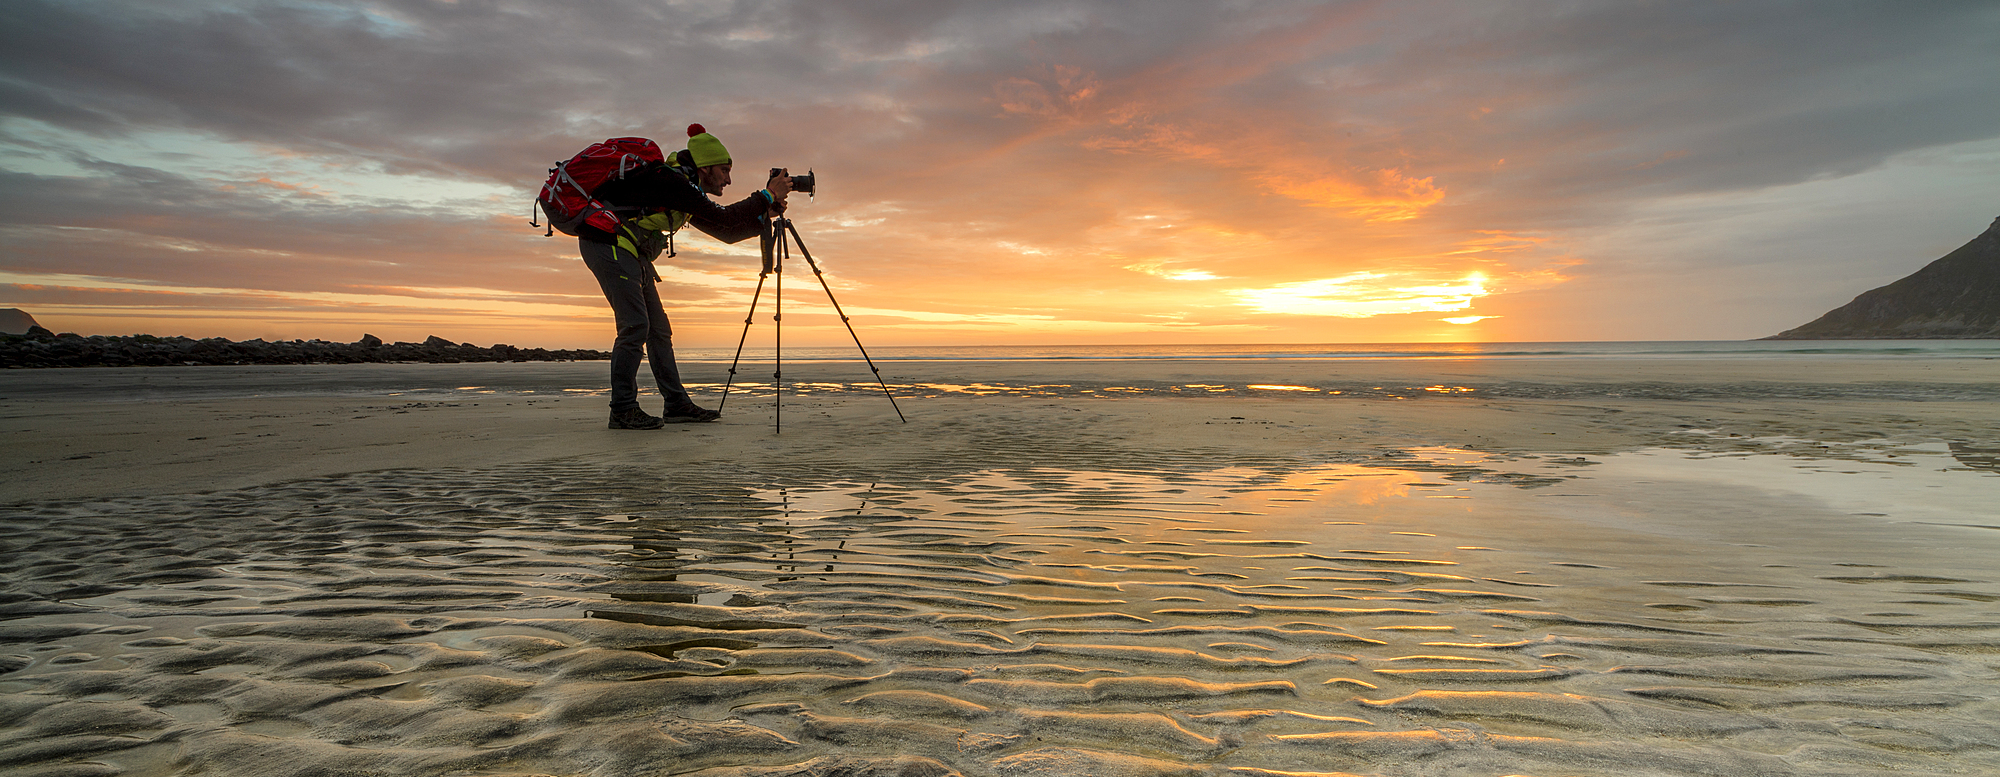 1179-1253 ( Roberto Moiola ) - Midnight sun frames photographer in action on Skagsanden beach, Ramberg, Nordland county, Lofoten Islands, Arctic, Northern Norway, Scandinavia, Europe